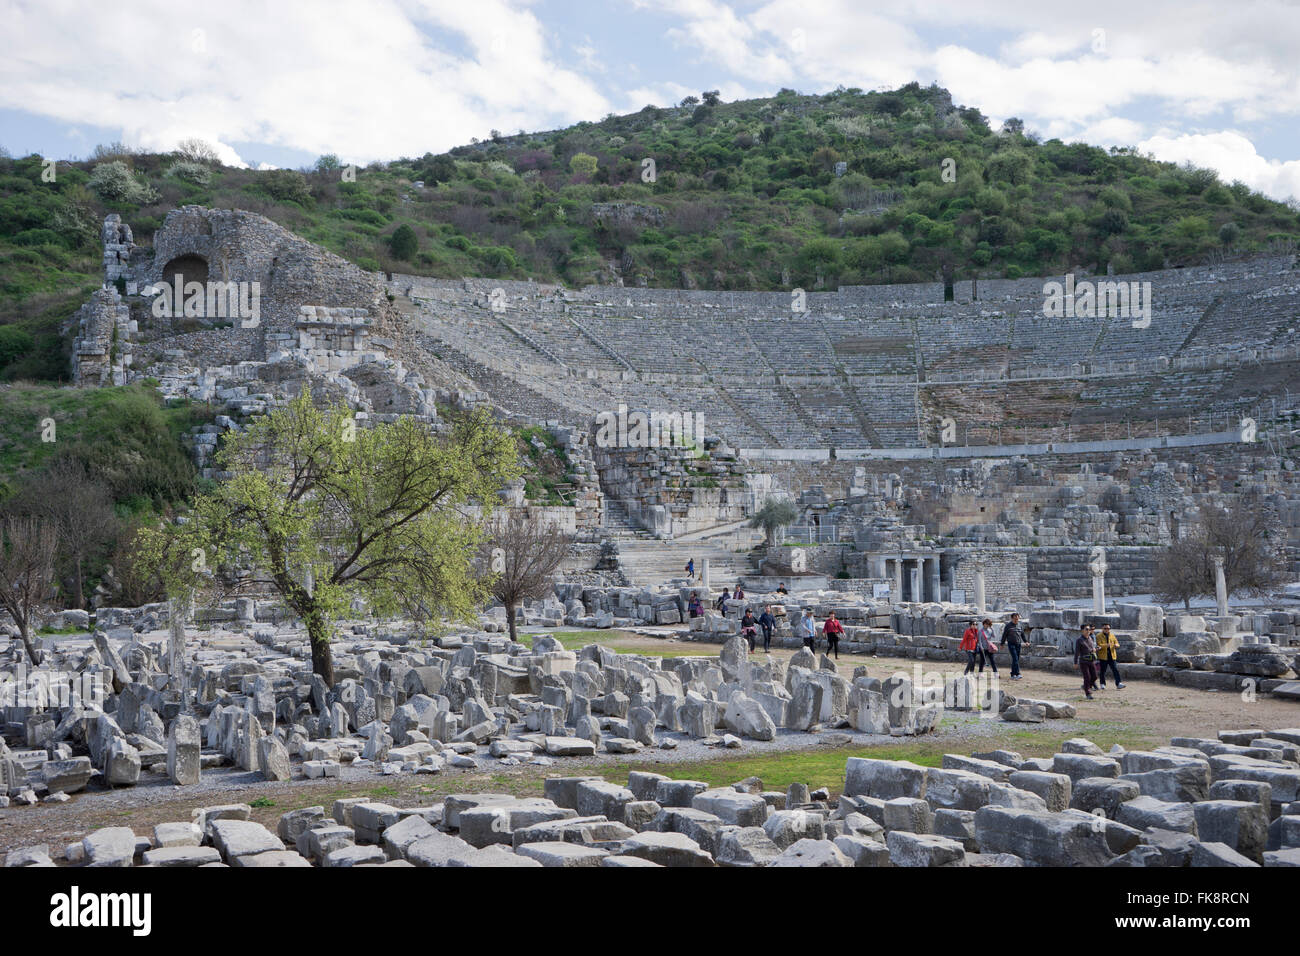 Tourists visit the ancient Greek and Roman periods city of Ephesus in Turkey - Stock Image